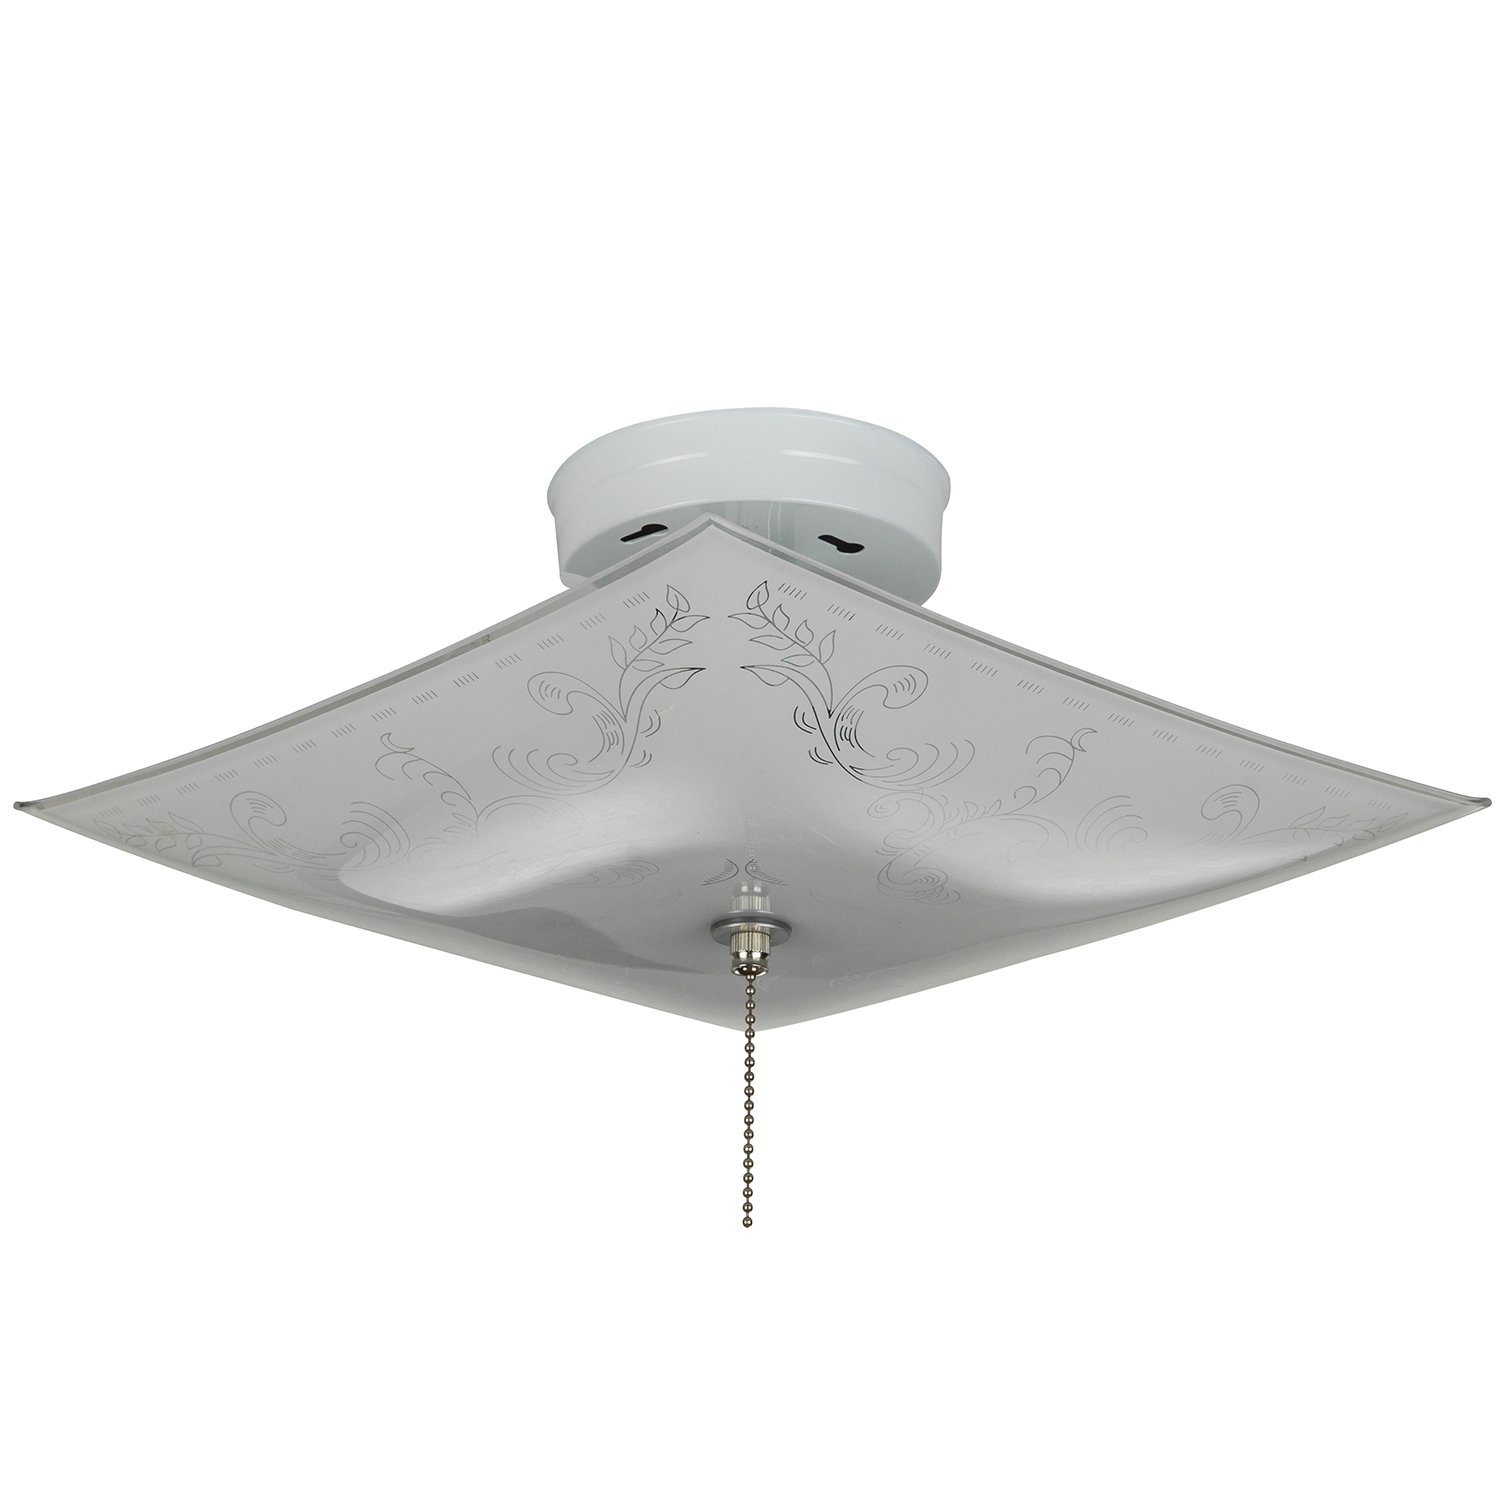 Sunlite 112pc 12 inch square pull chain 2 lite decorative ceiling fixture white finish with ornate white glass flush mount ceiling light fixtures